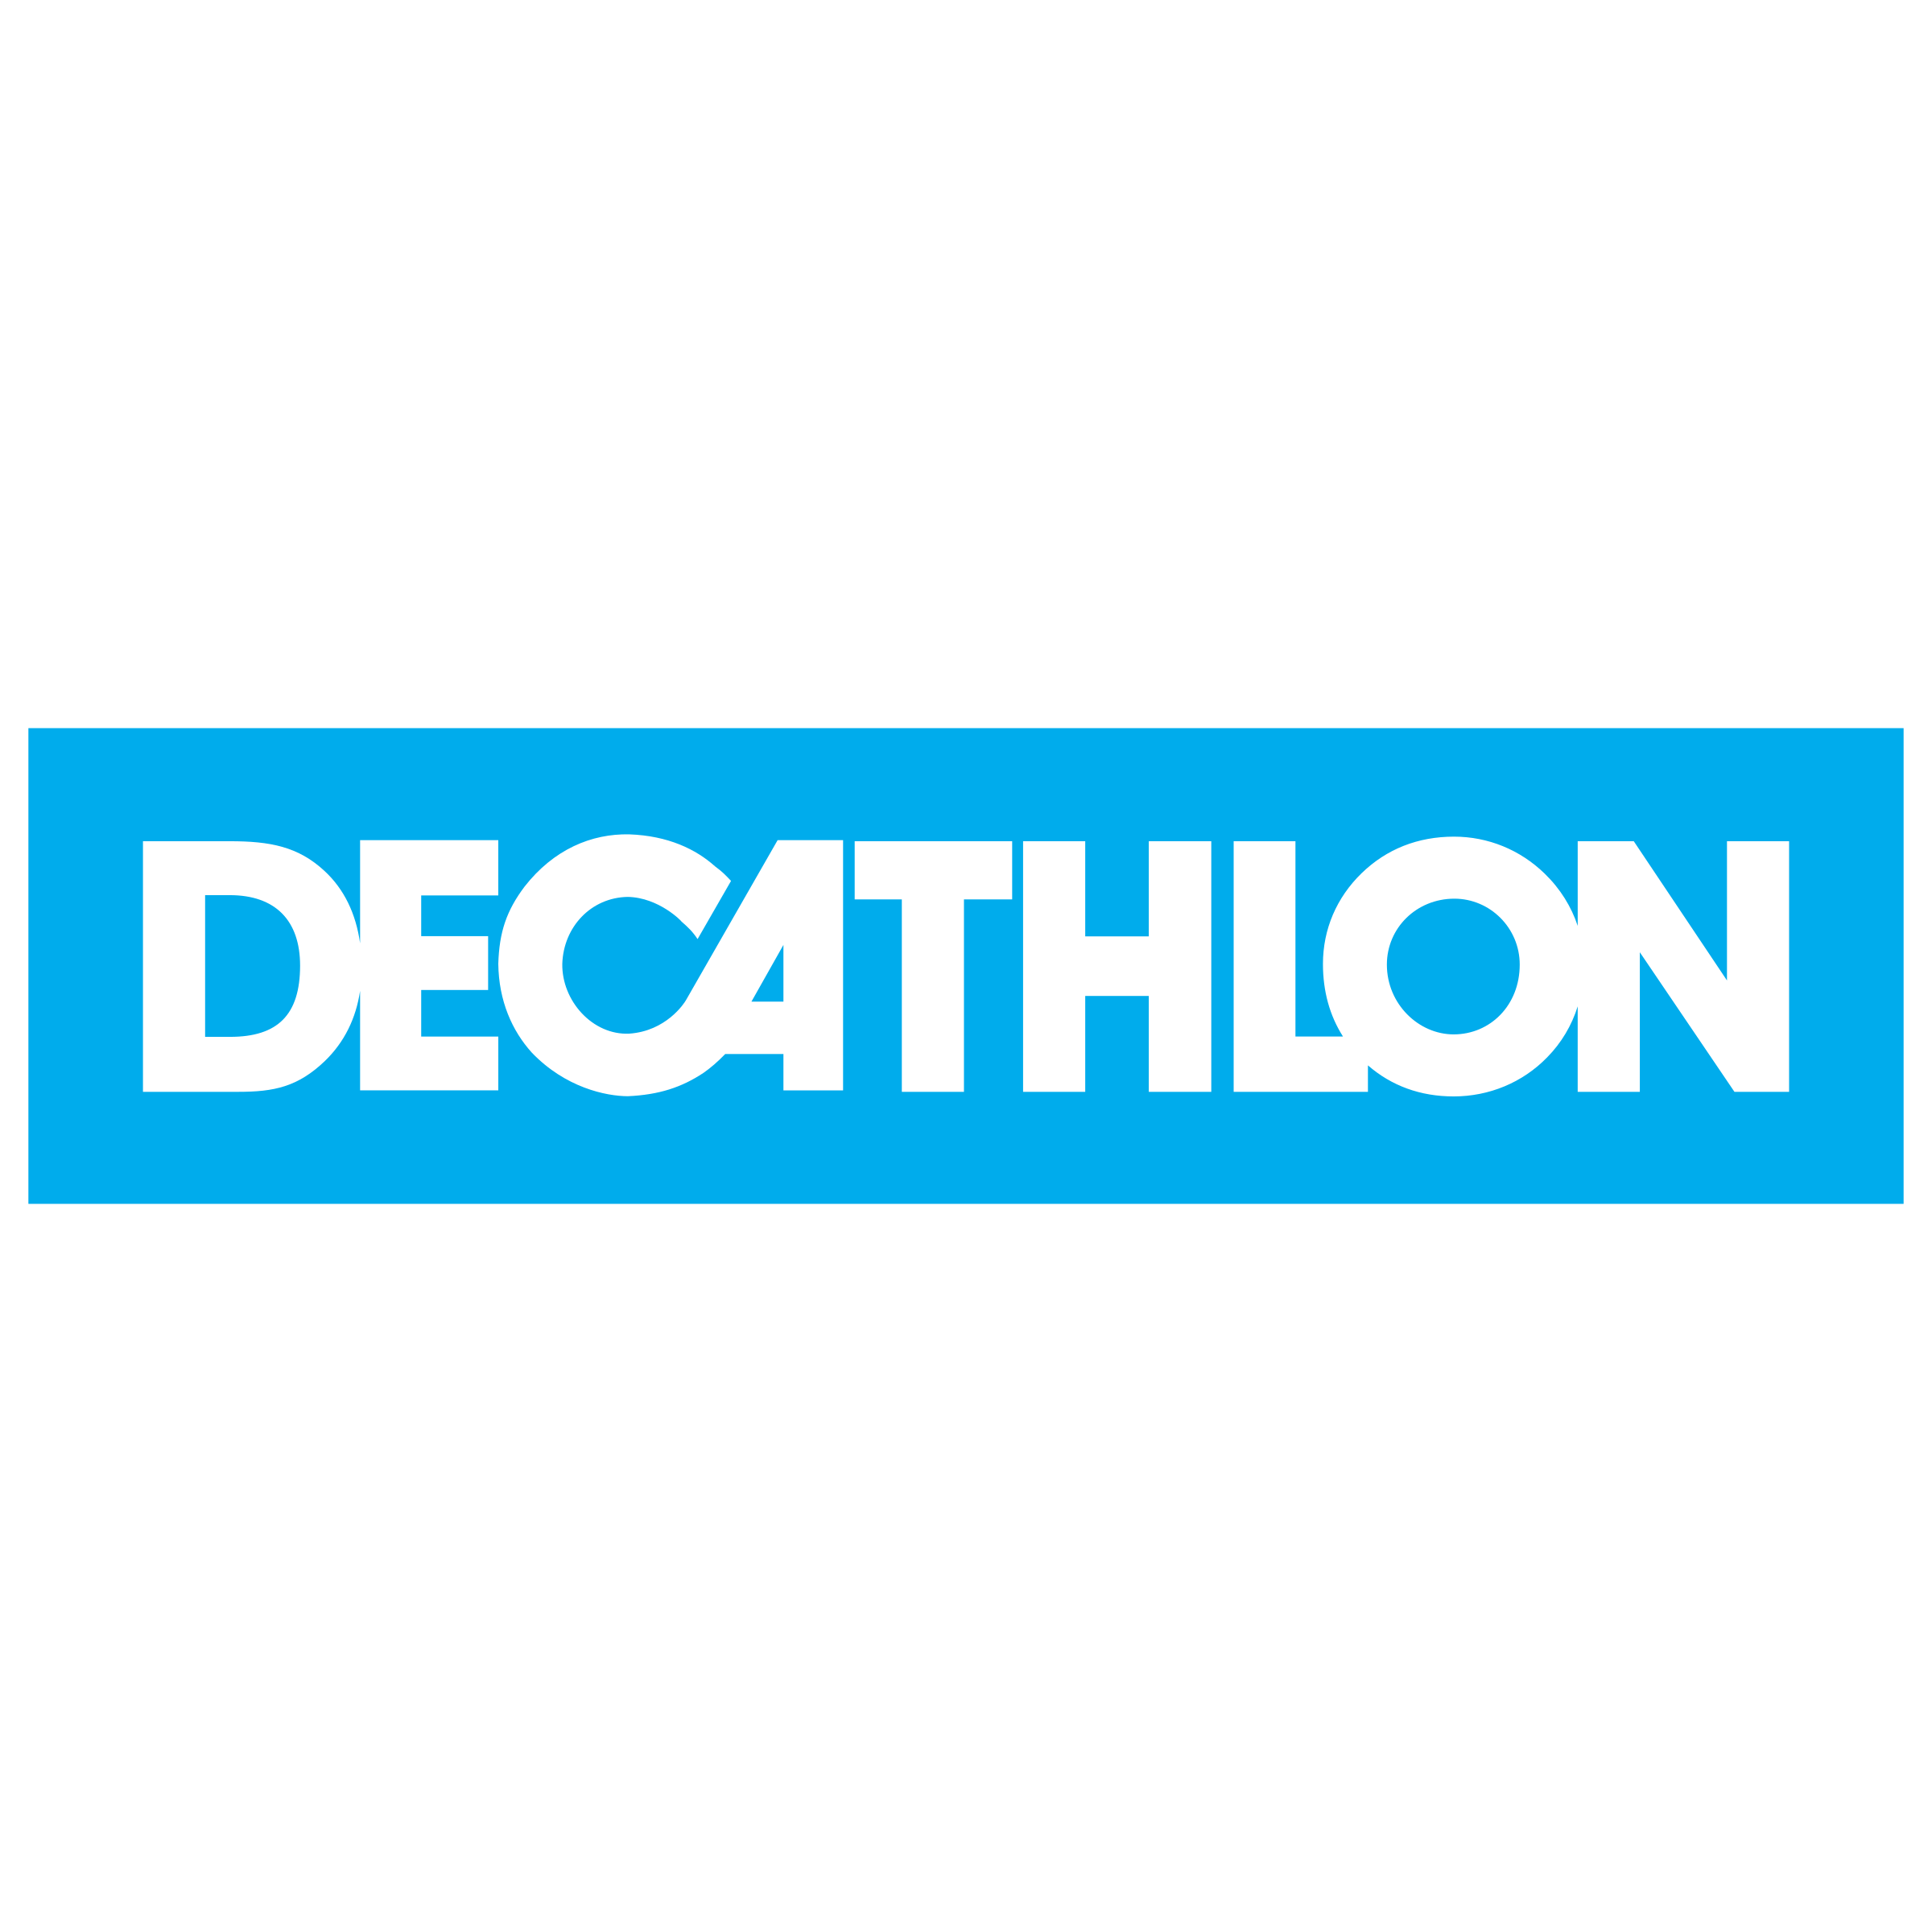 Decathlon: GET FREE SHIPPING ON YOUR FIRST ORDER